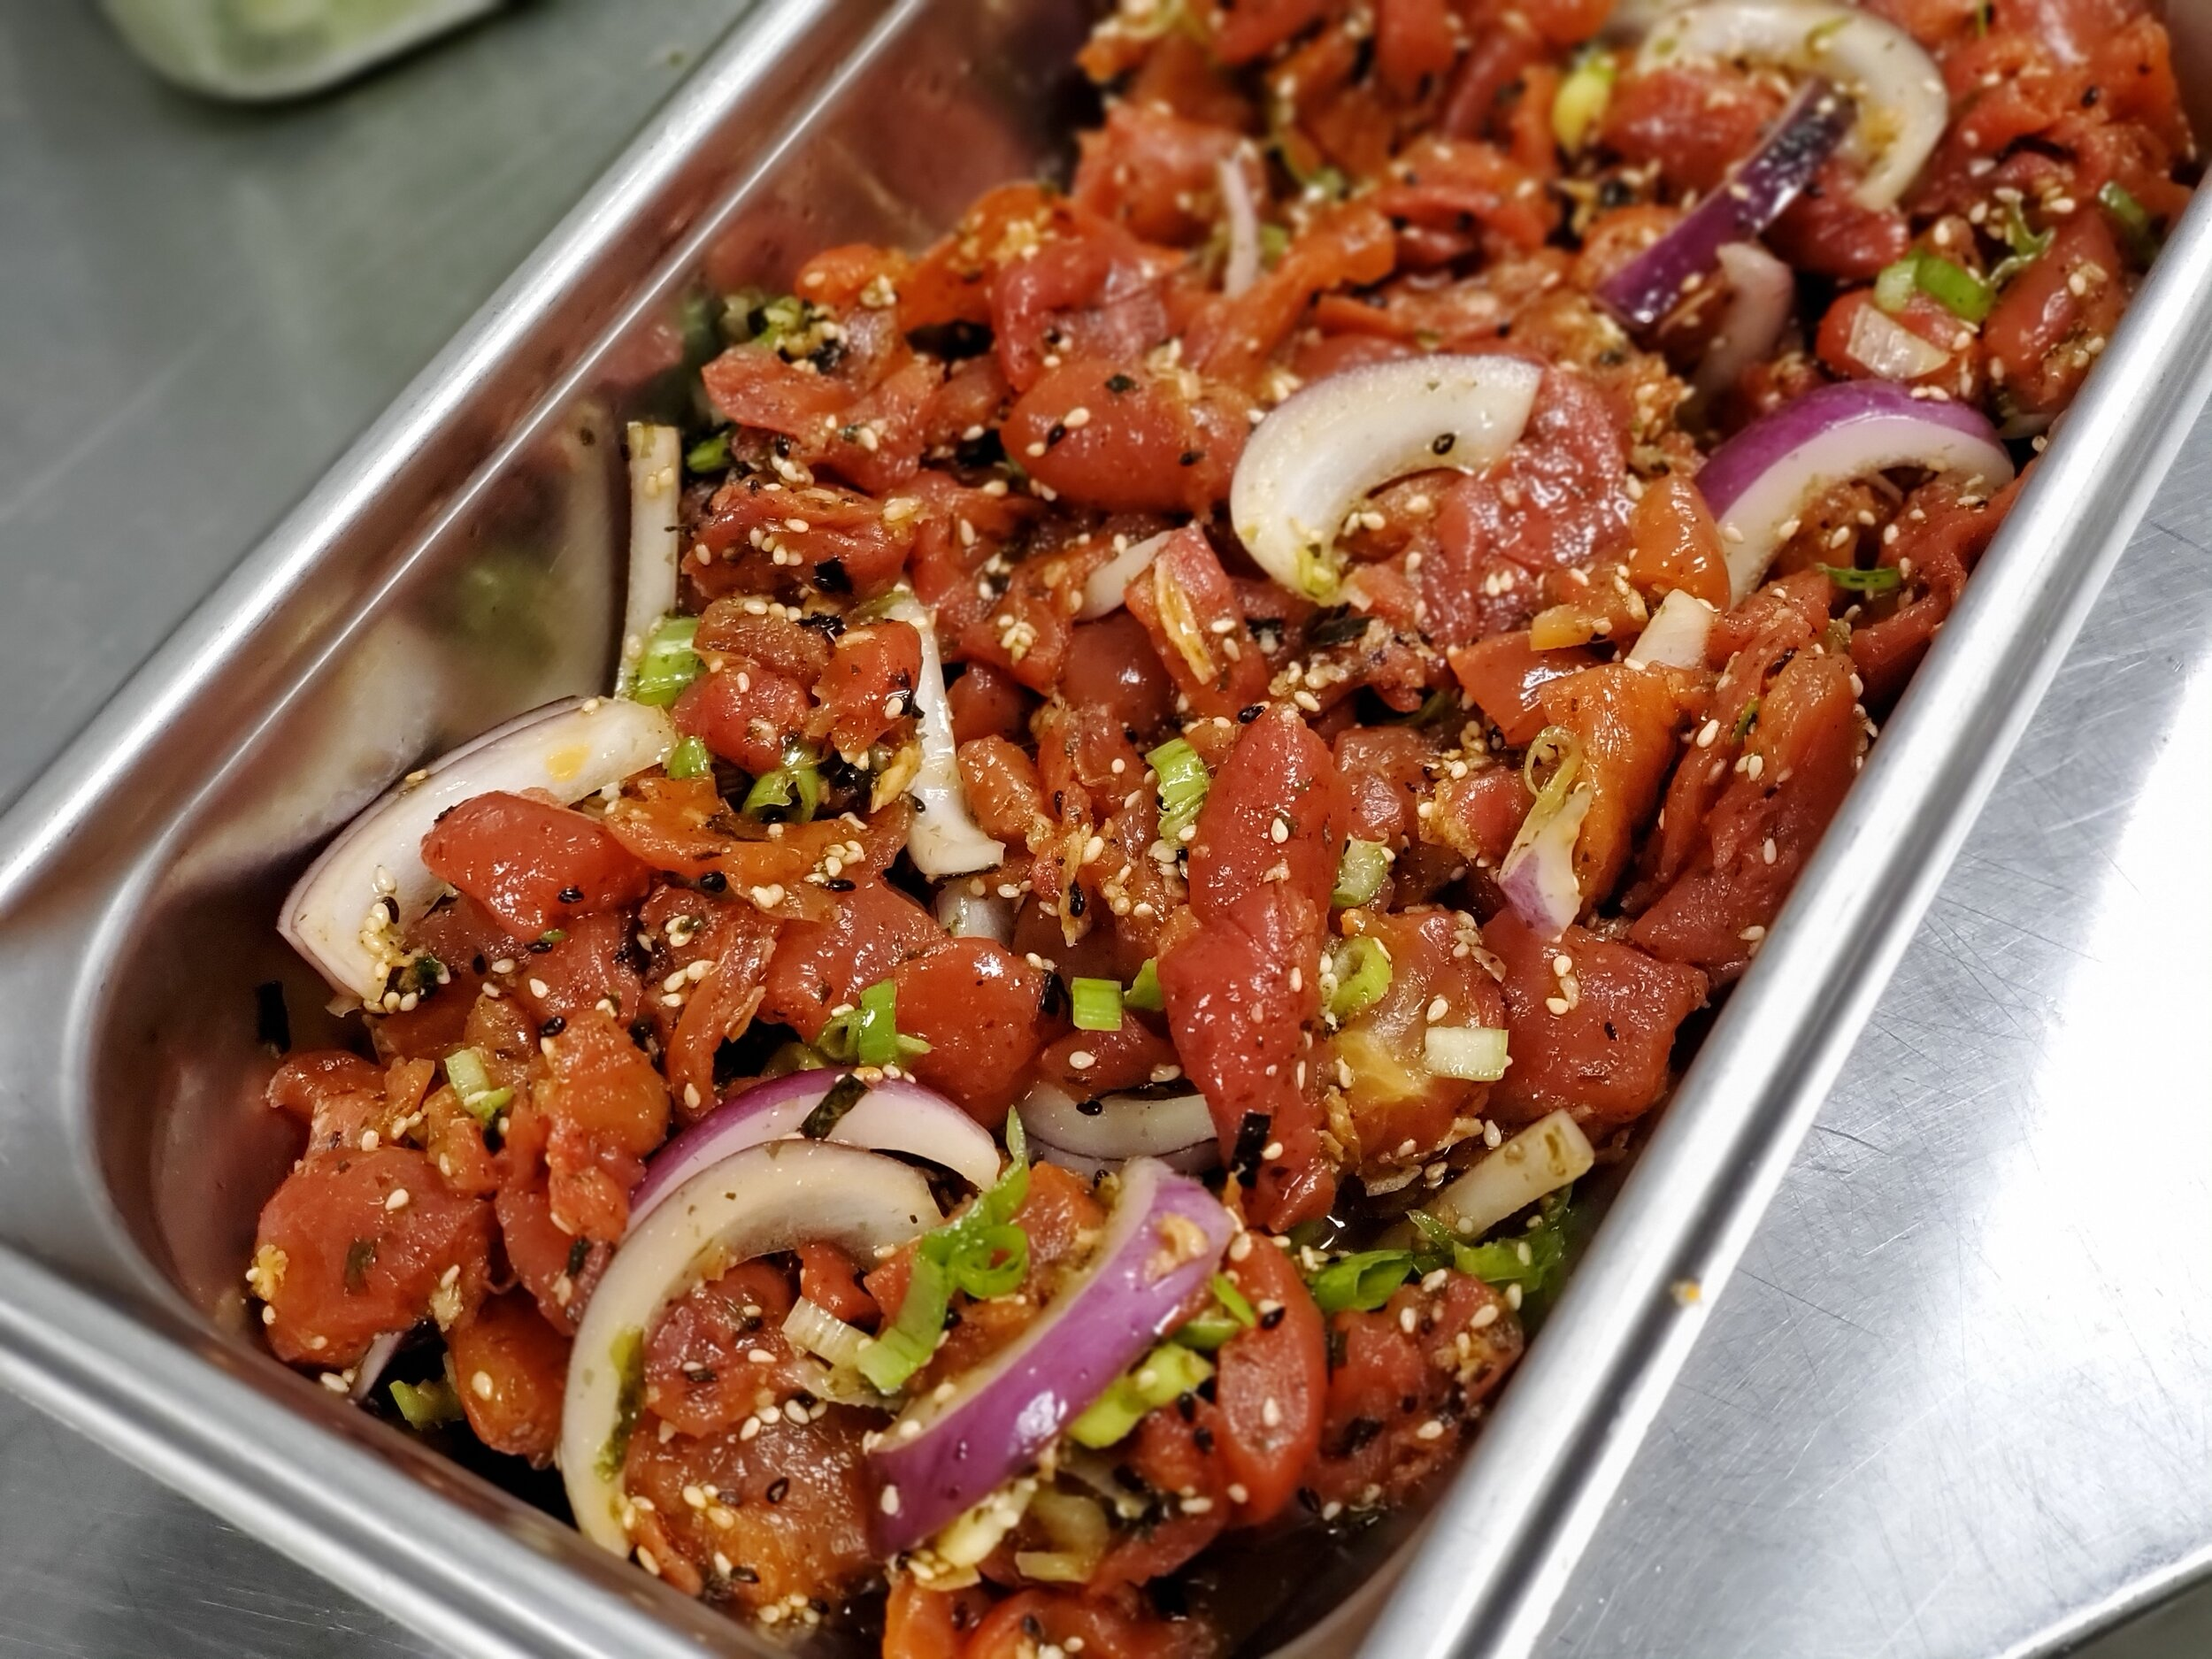 Marinated Ahimi with red and green onions, furikake, and sesame oil, topped with crispy onion s